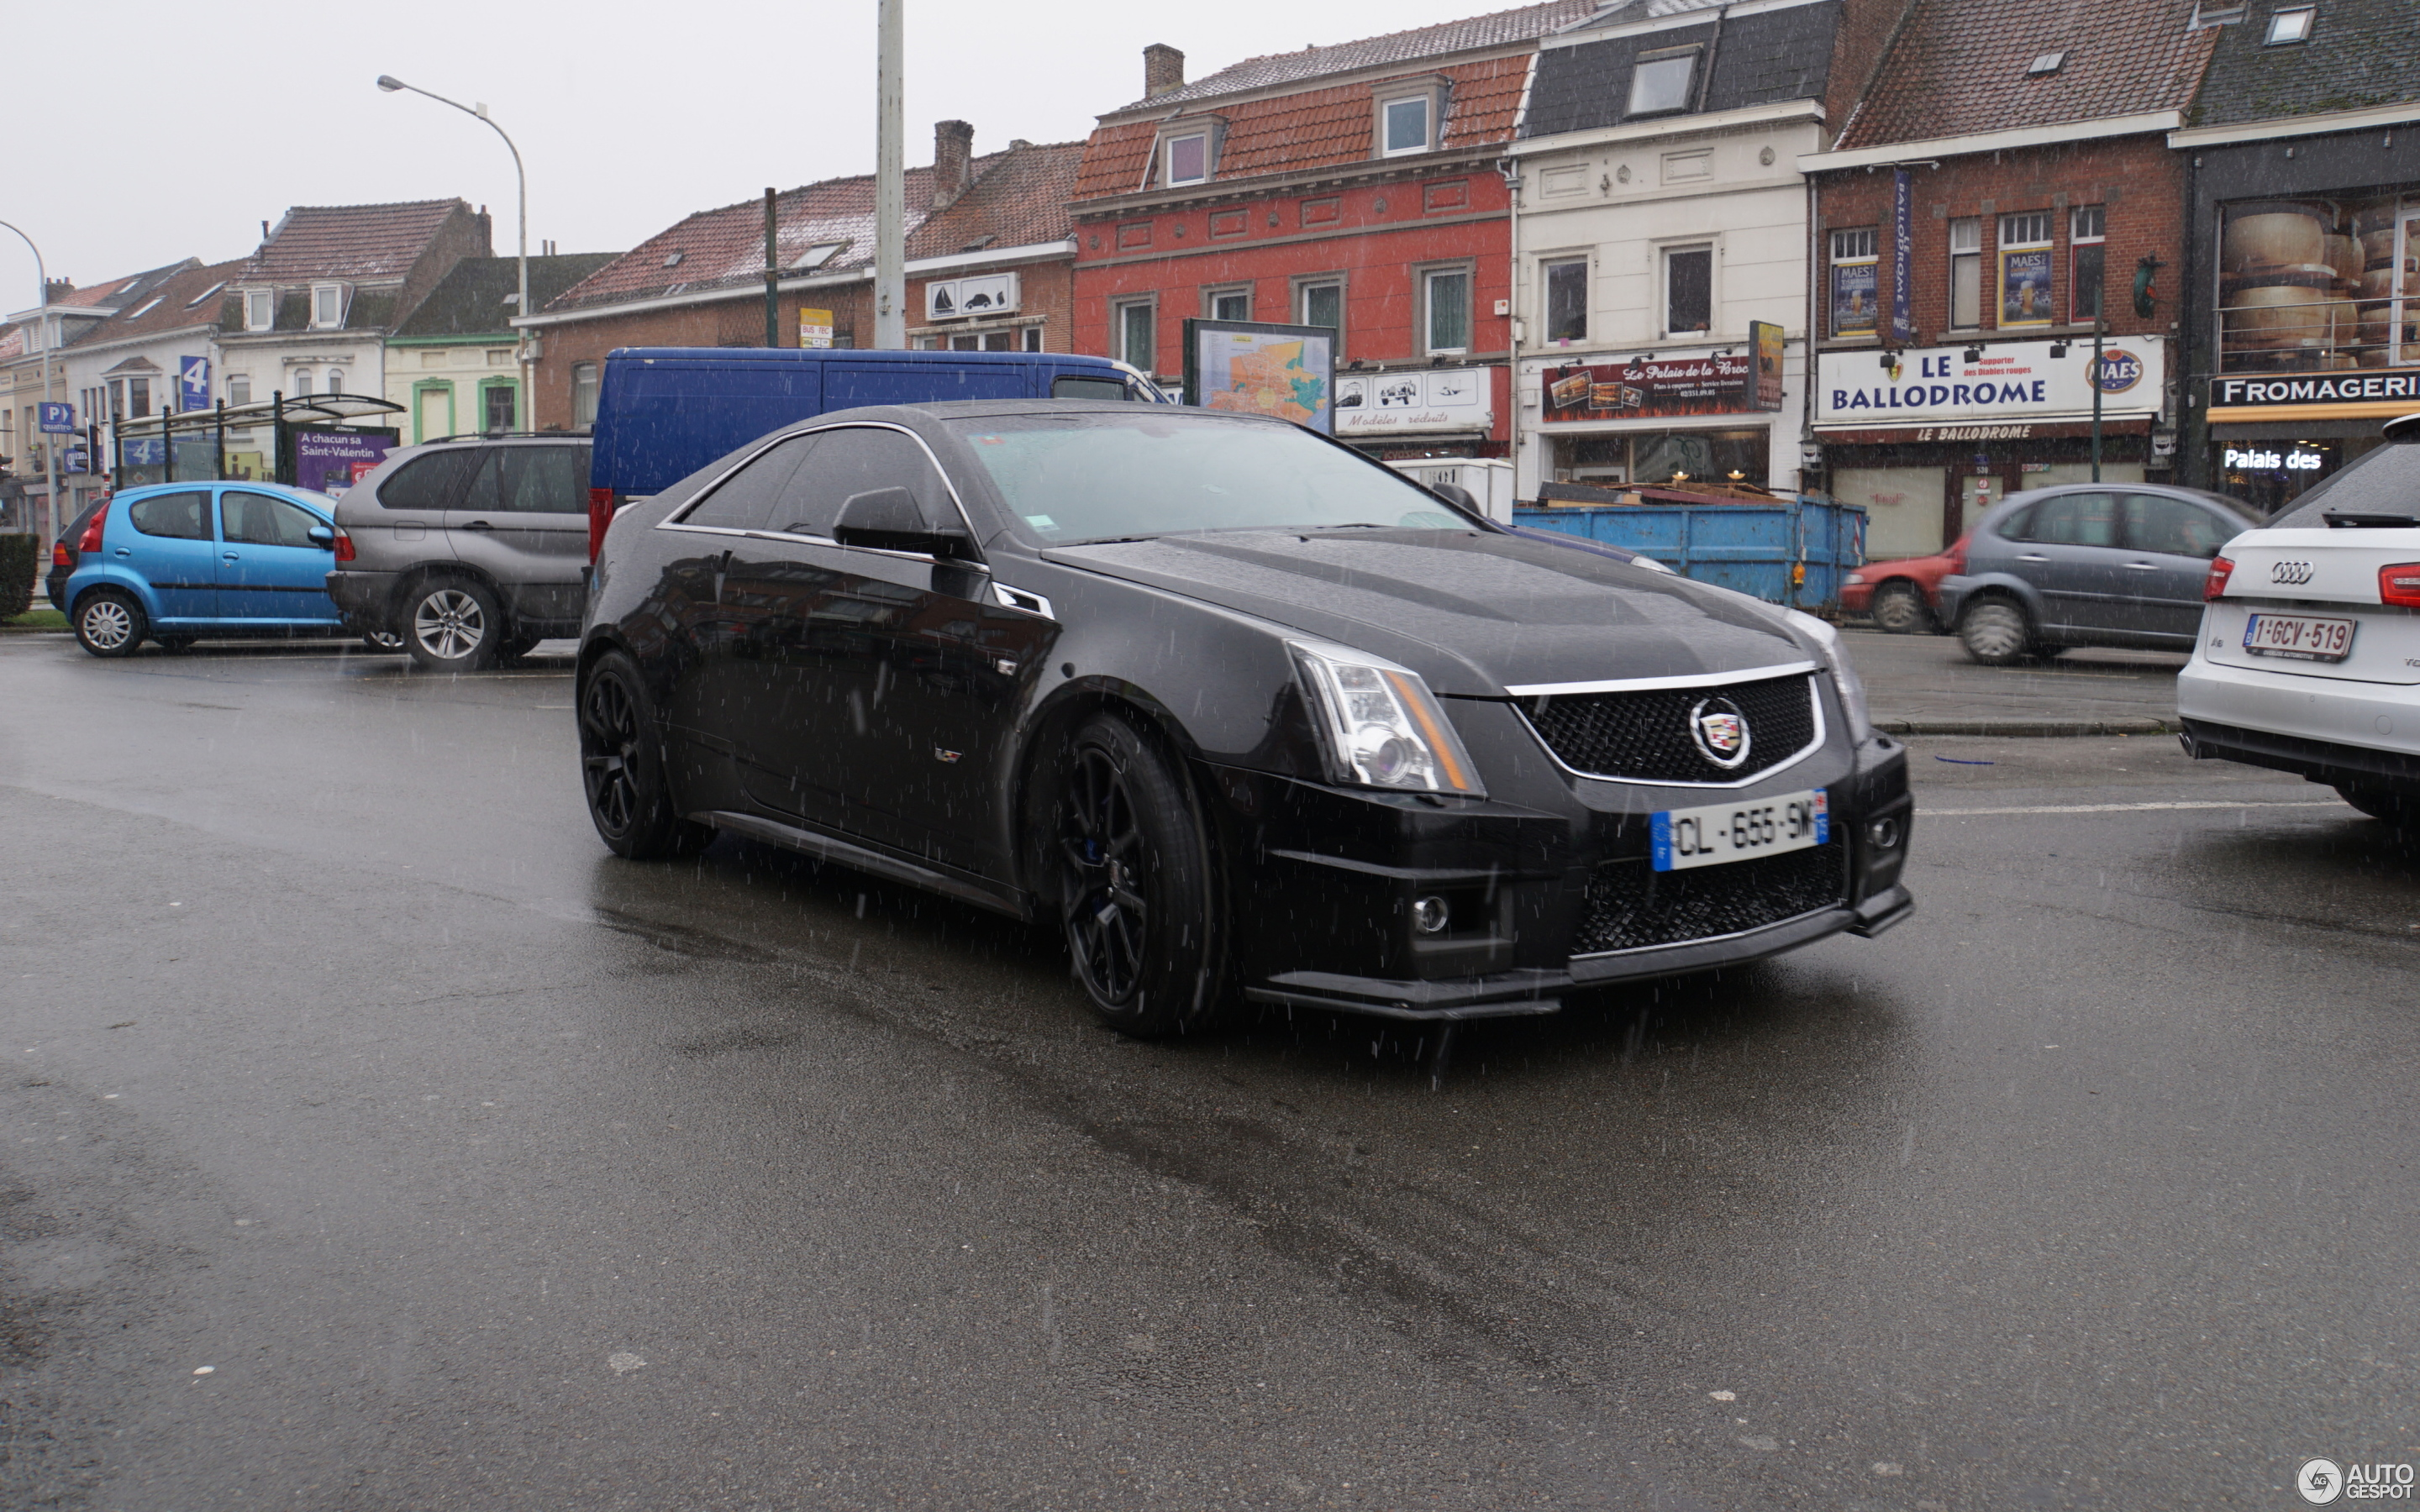 cts be boss sale will smart for used without baggage v the s cadillacs a is cadillac if